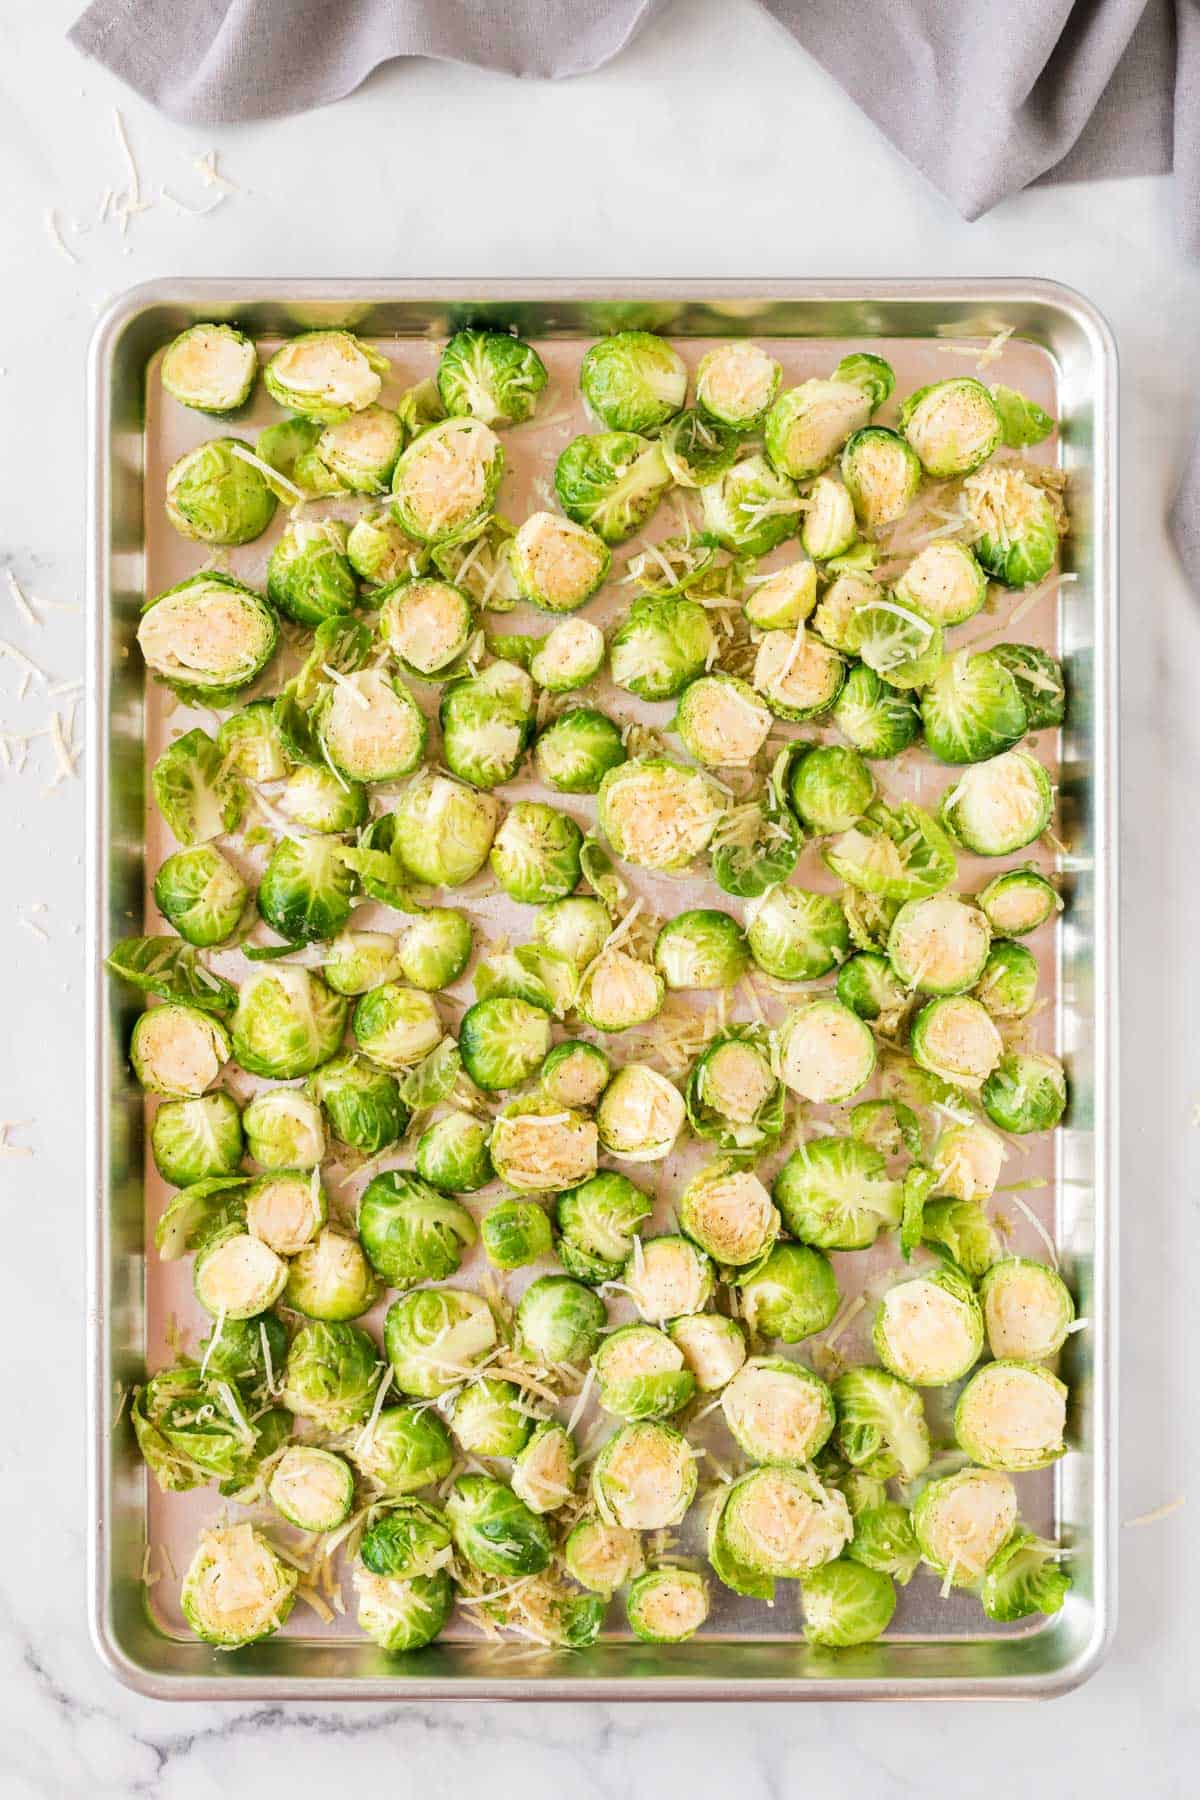 raw brussels sprouts on the baking sheet